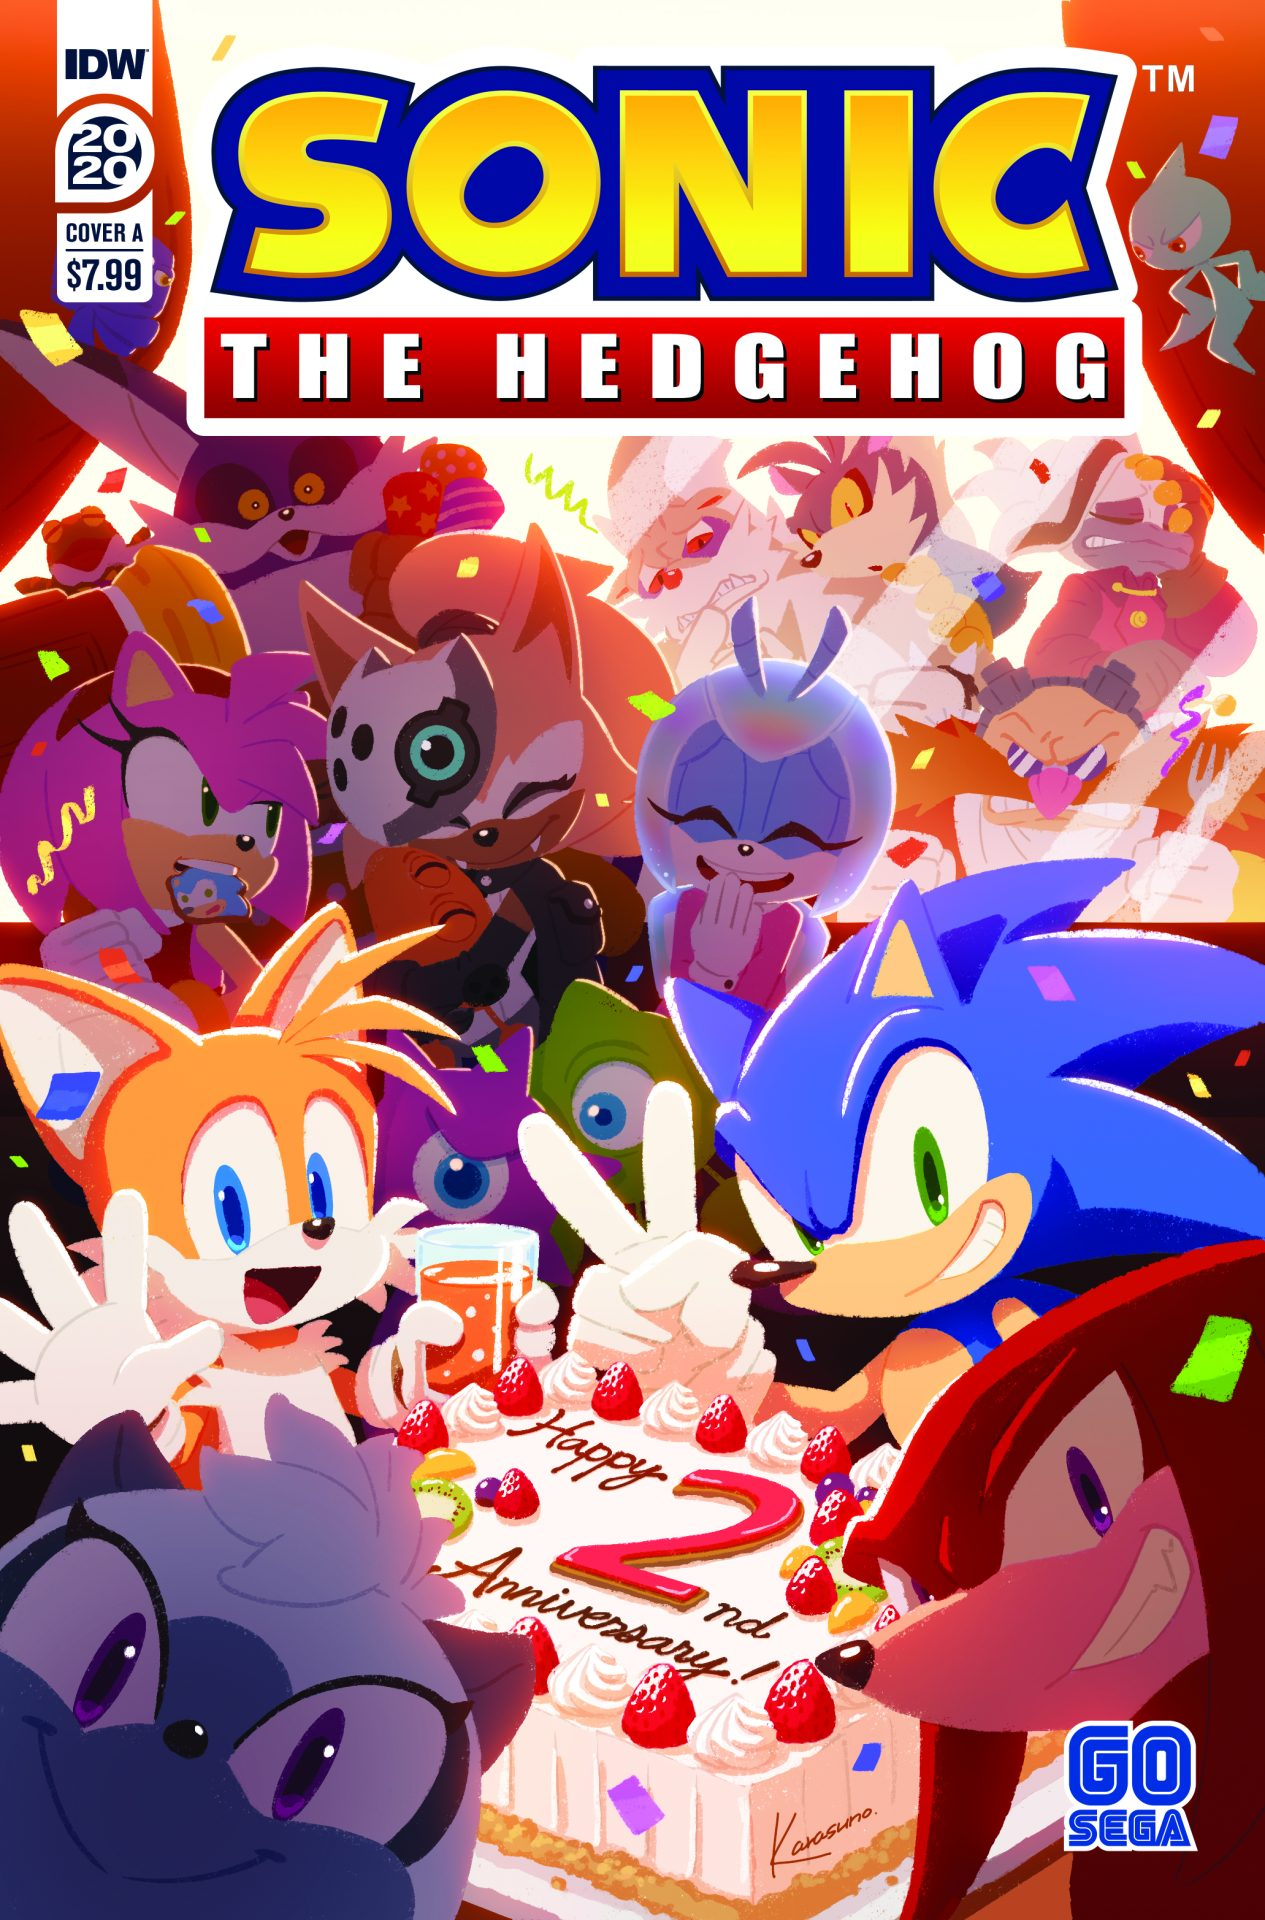 Preview Sonic The Hedgehog Annual 2020 Graphic Policy